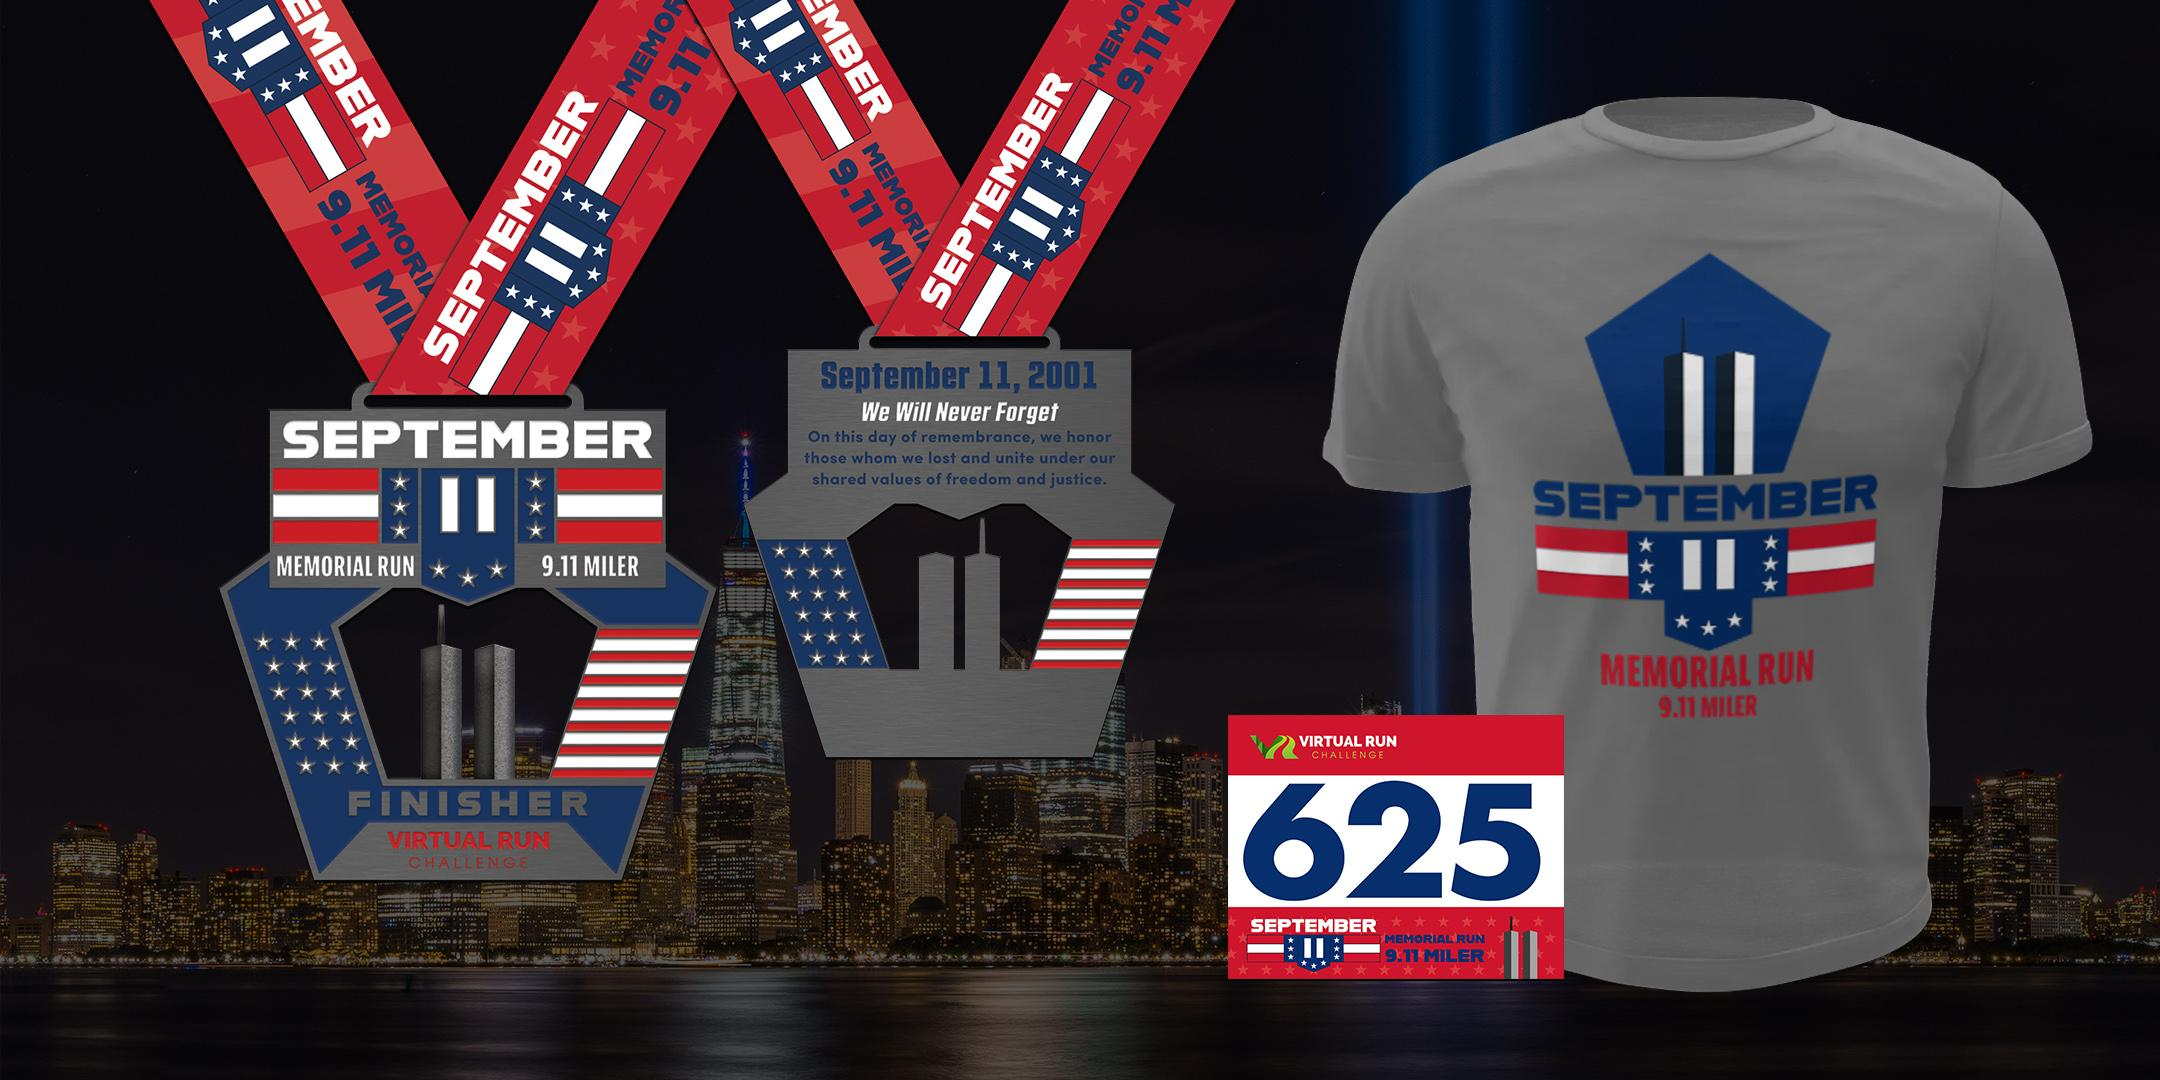 September 11 Memorial Virtual Run Walk (9.11 Miles) - Philadelphia